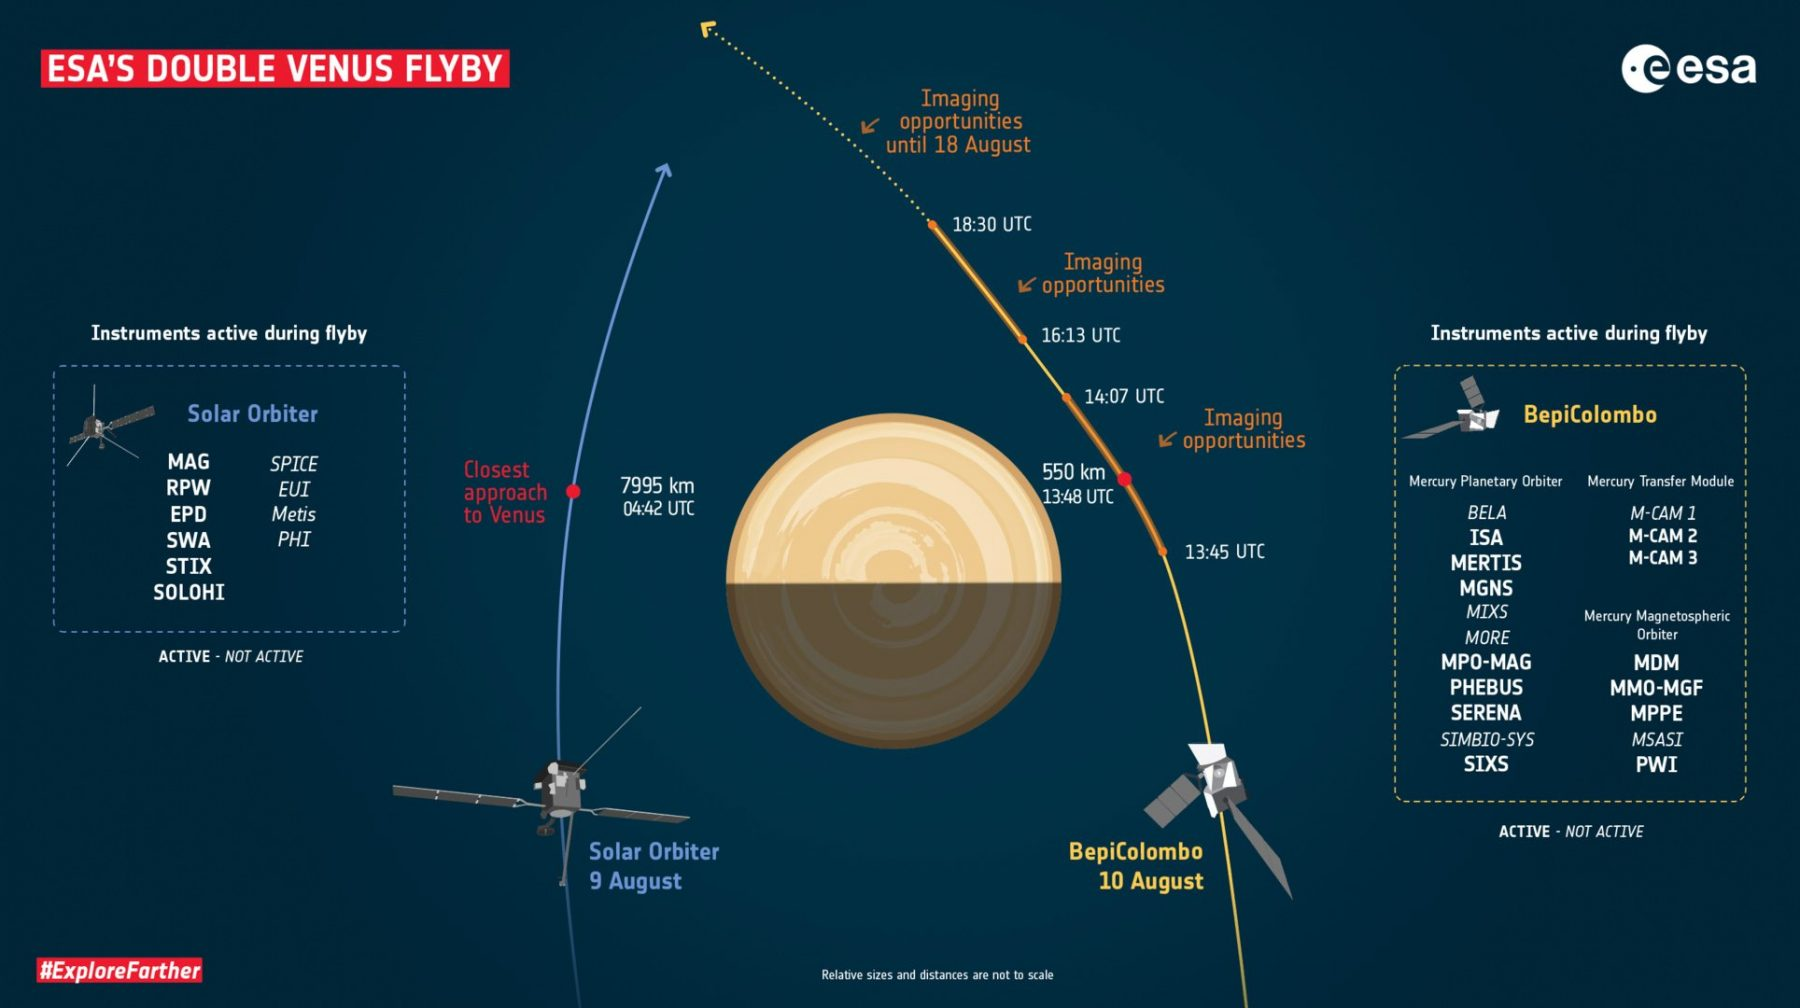 Flight plan of the two Venus flybys which will happen next week. Credit: ESA